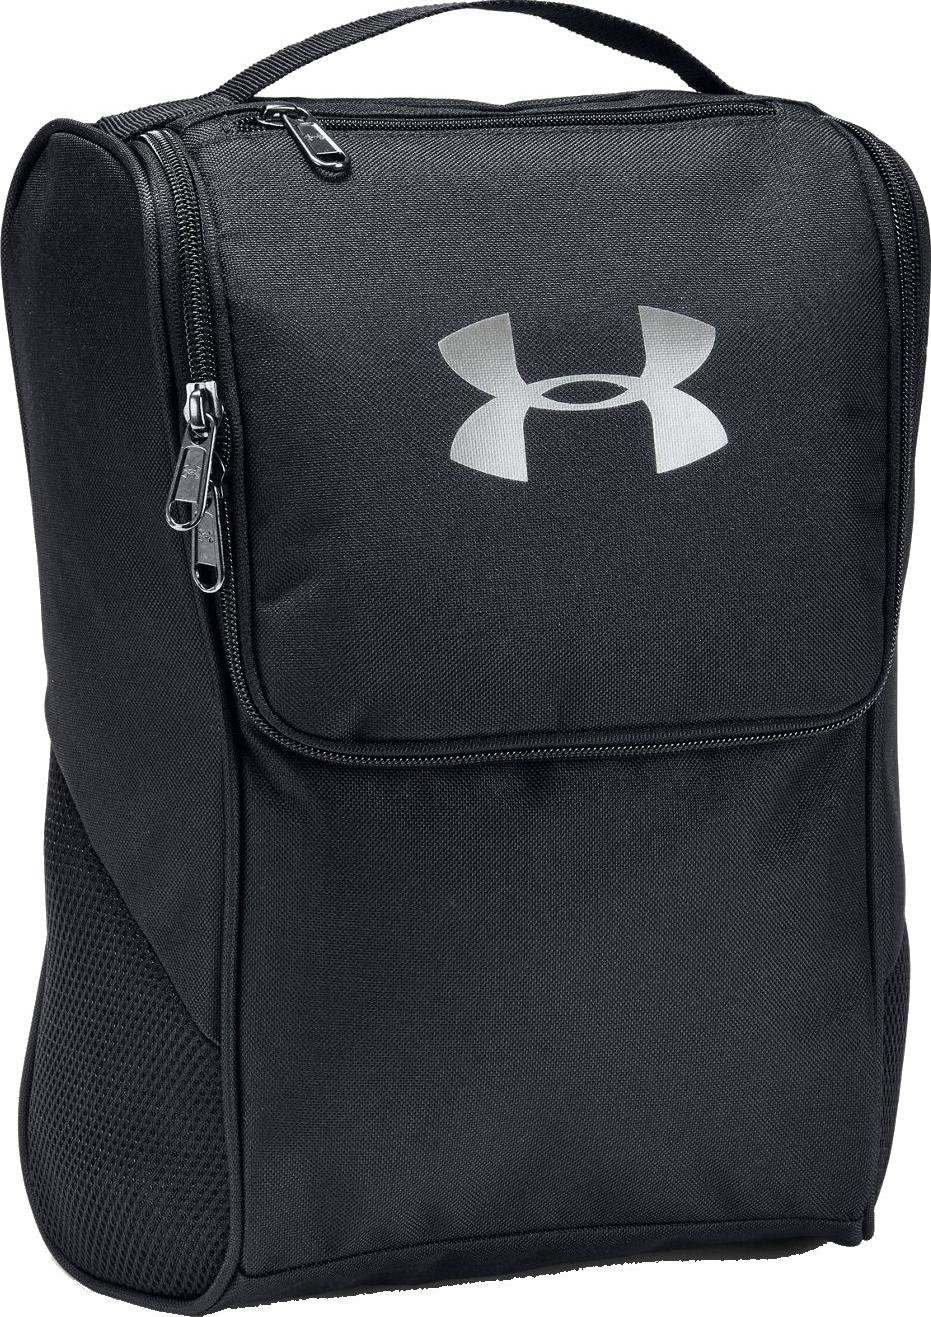 Bolsa para zapatos Under Armour UA Shoe Bag